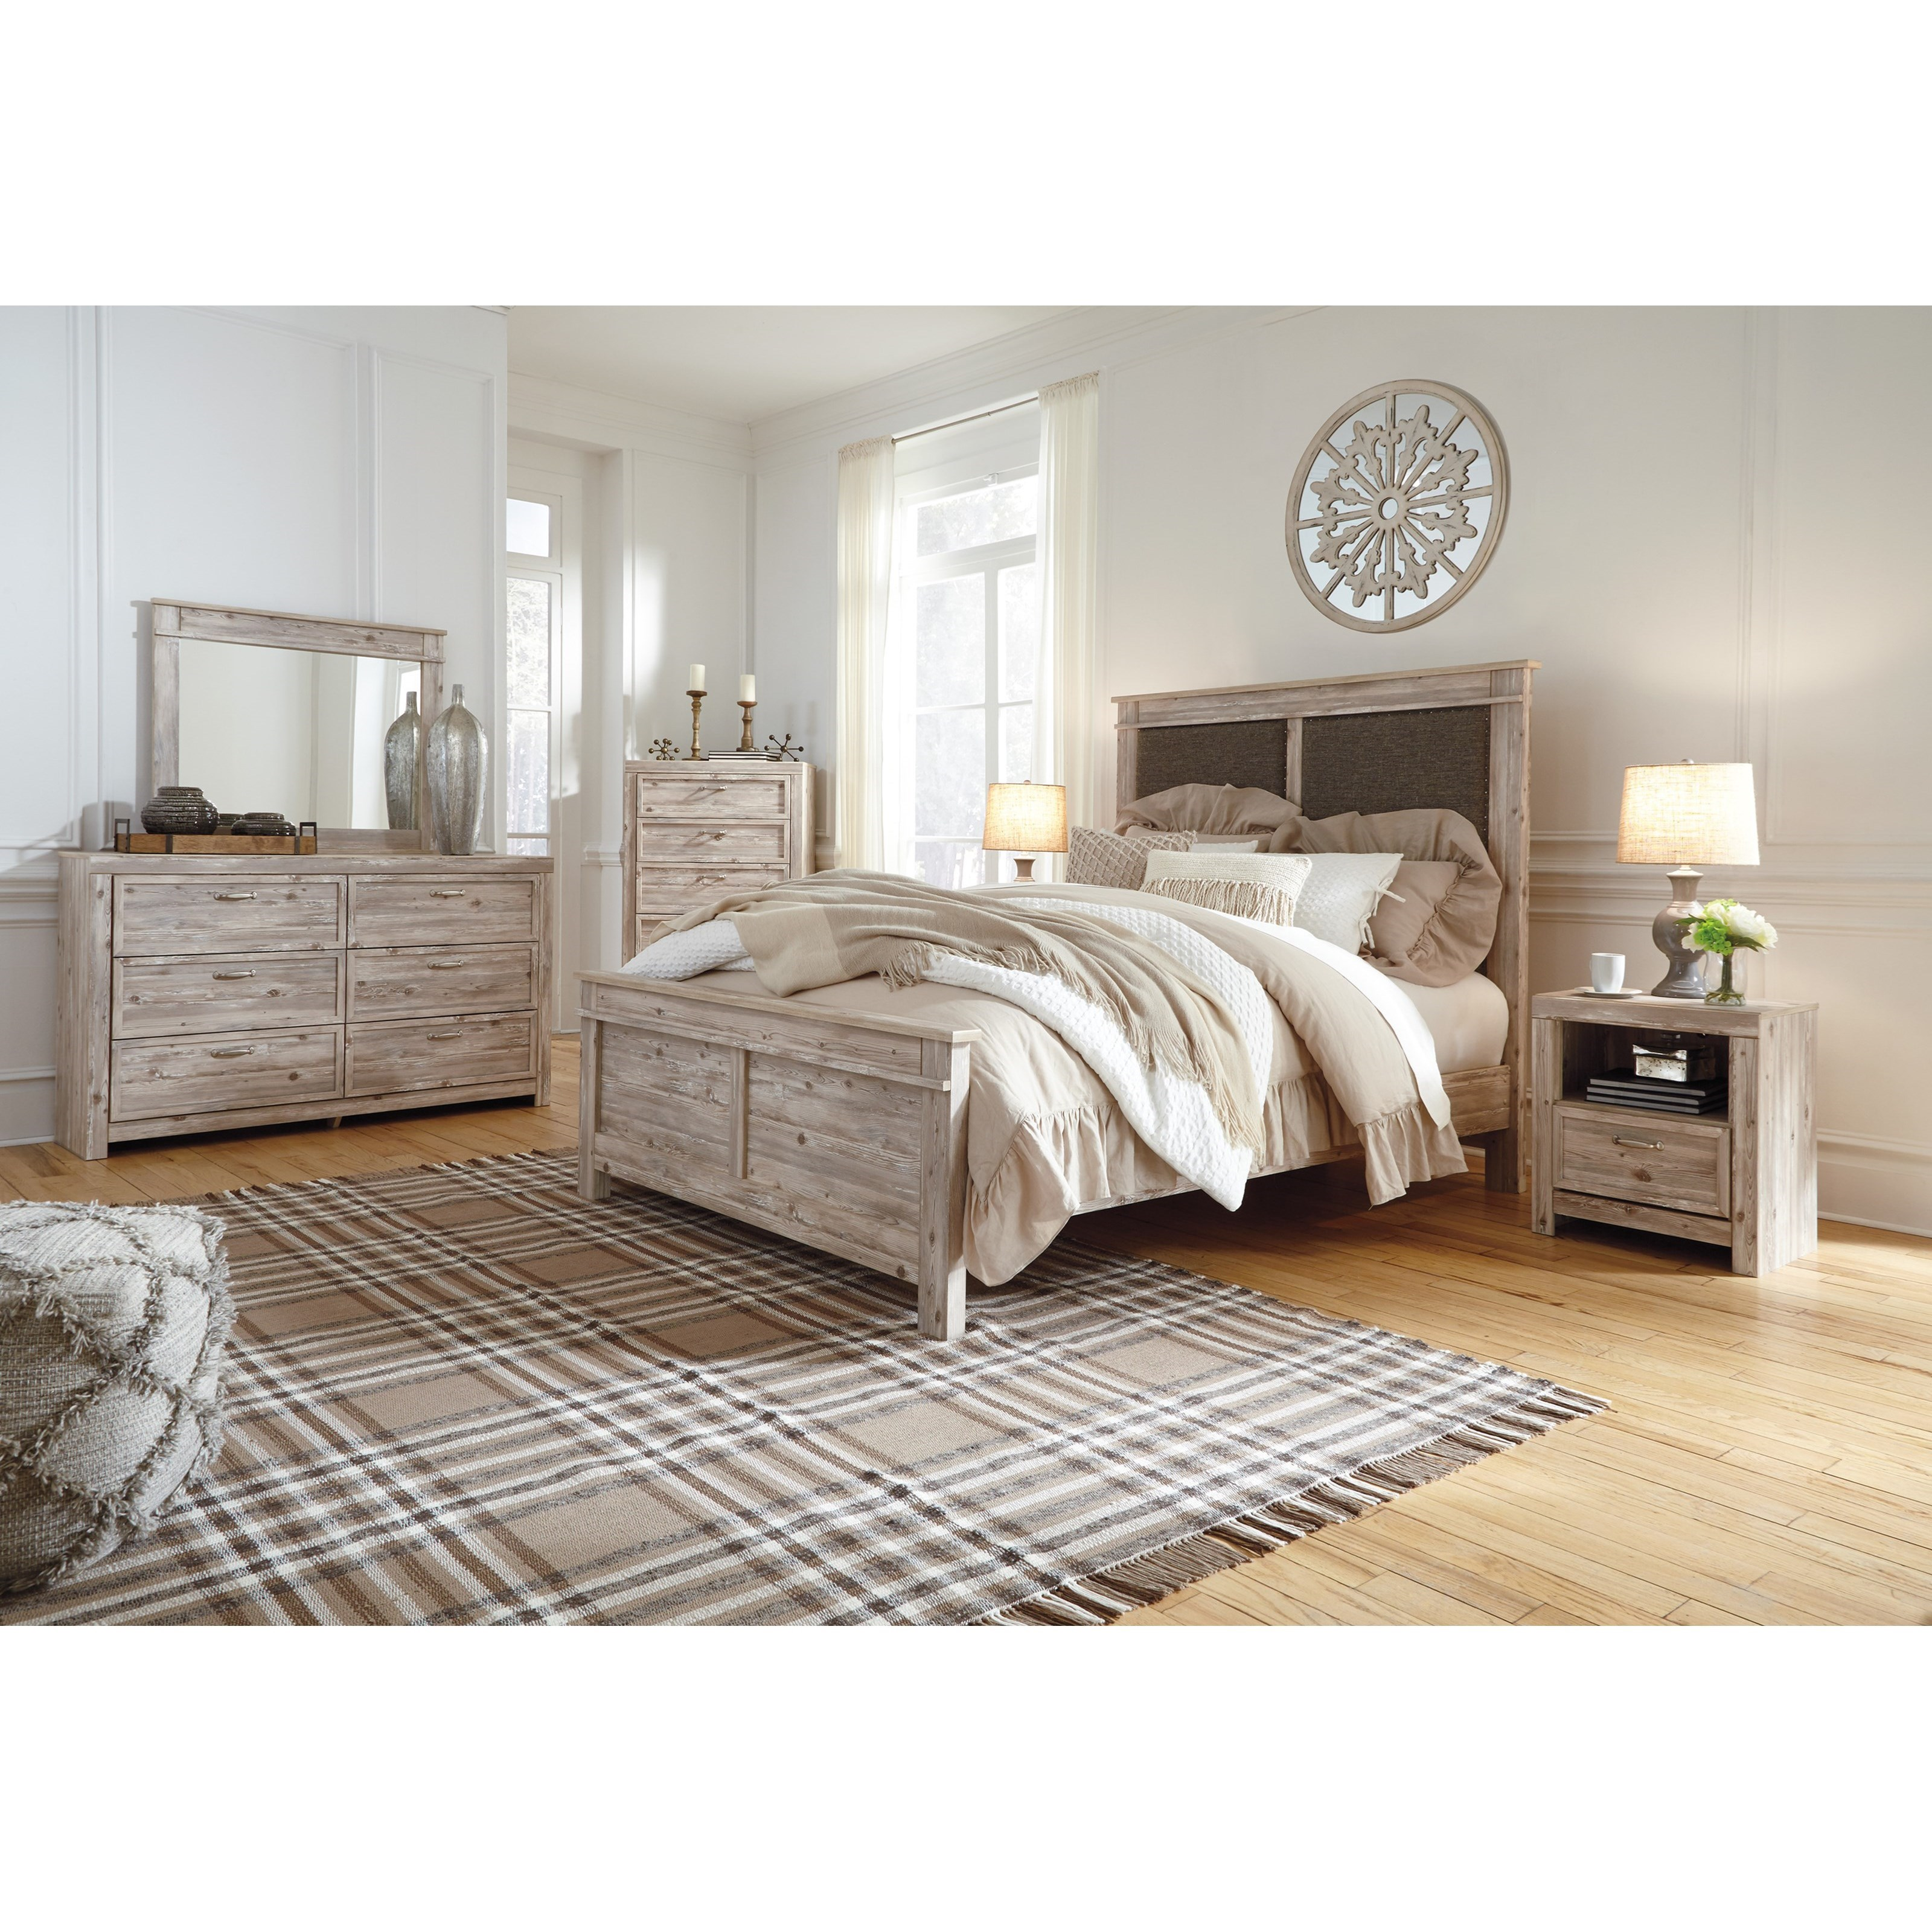 Bedroom Groups: Benchcraft By Ashley Willabry Queen Bedroom Group